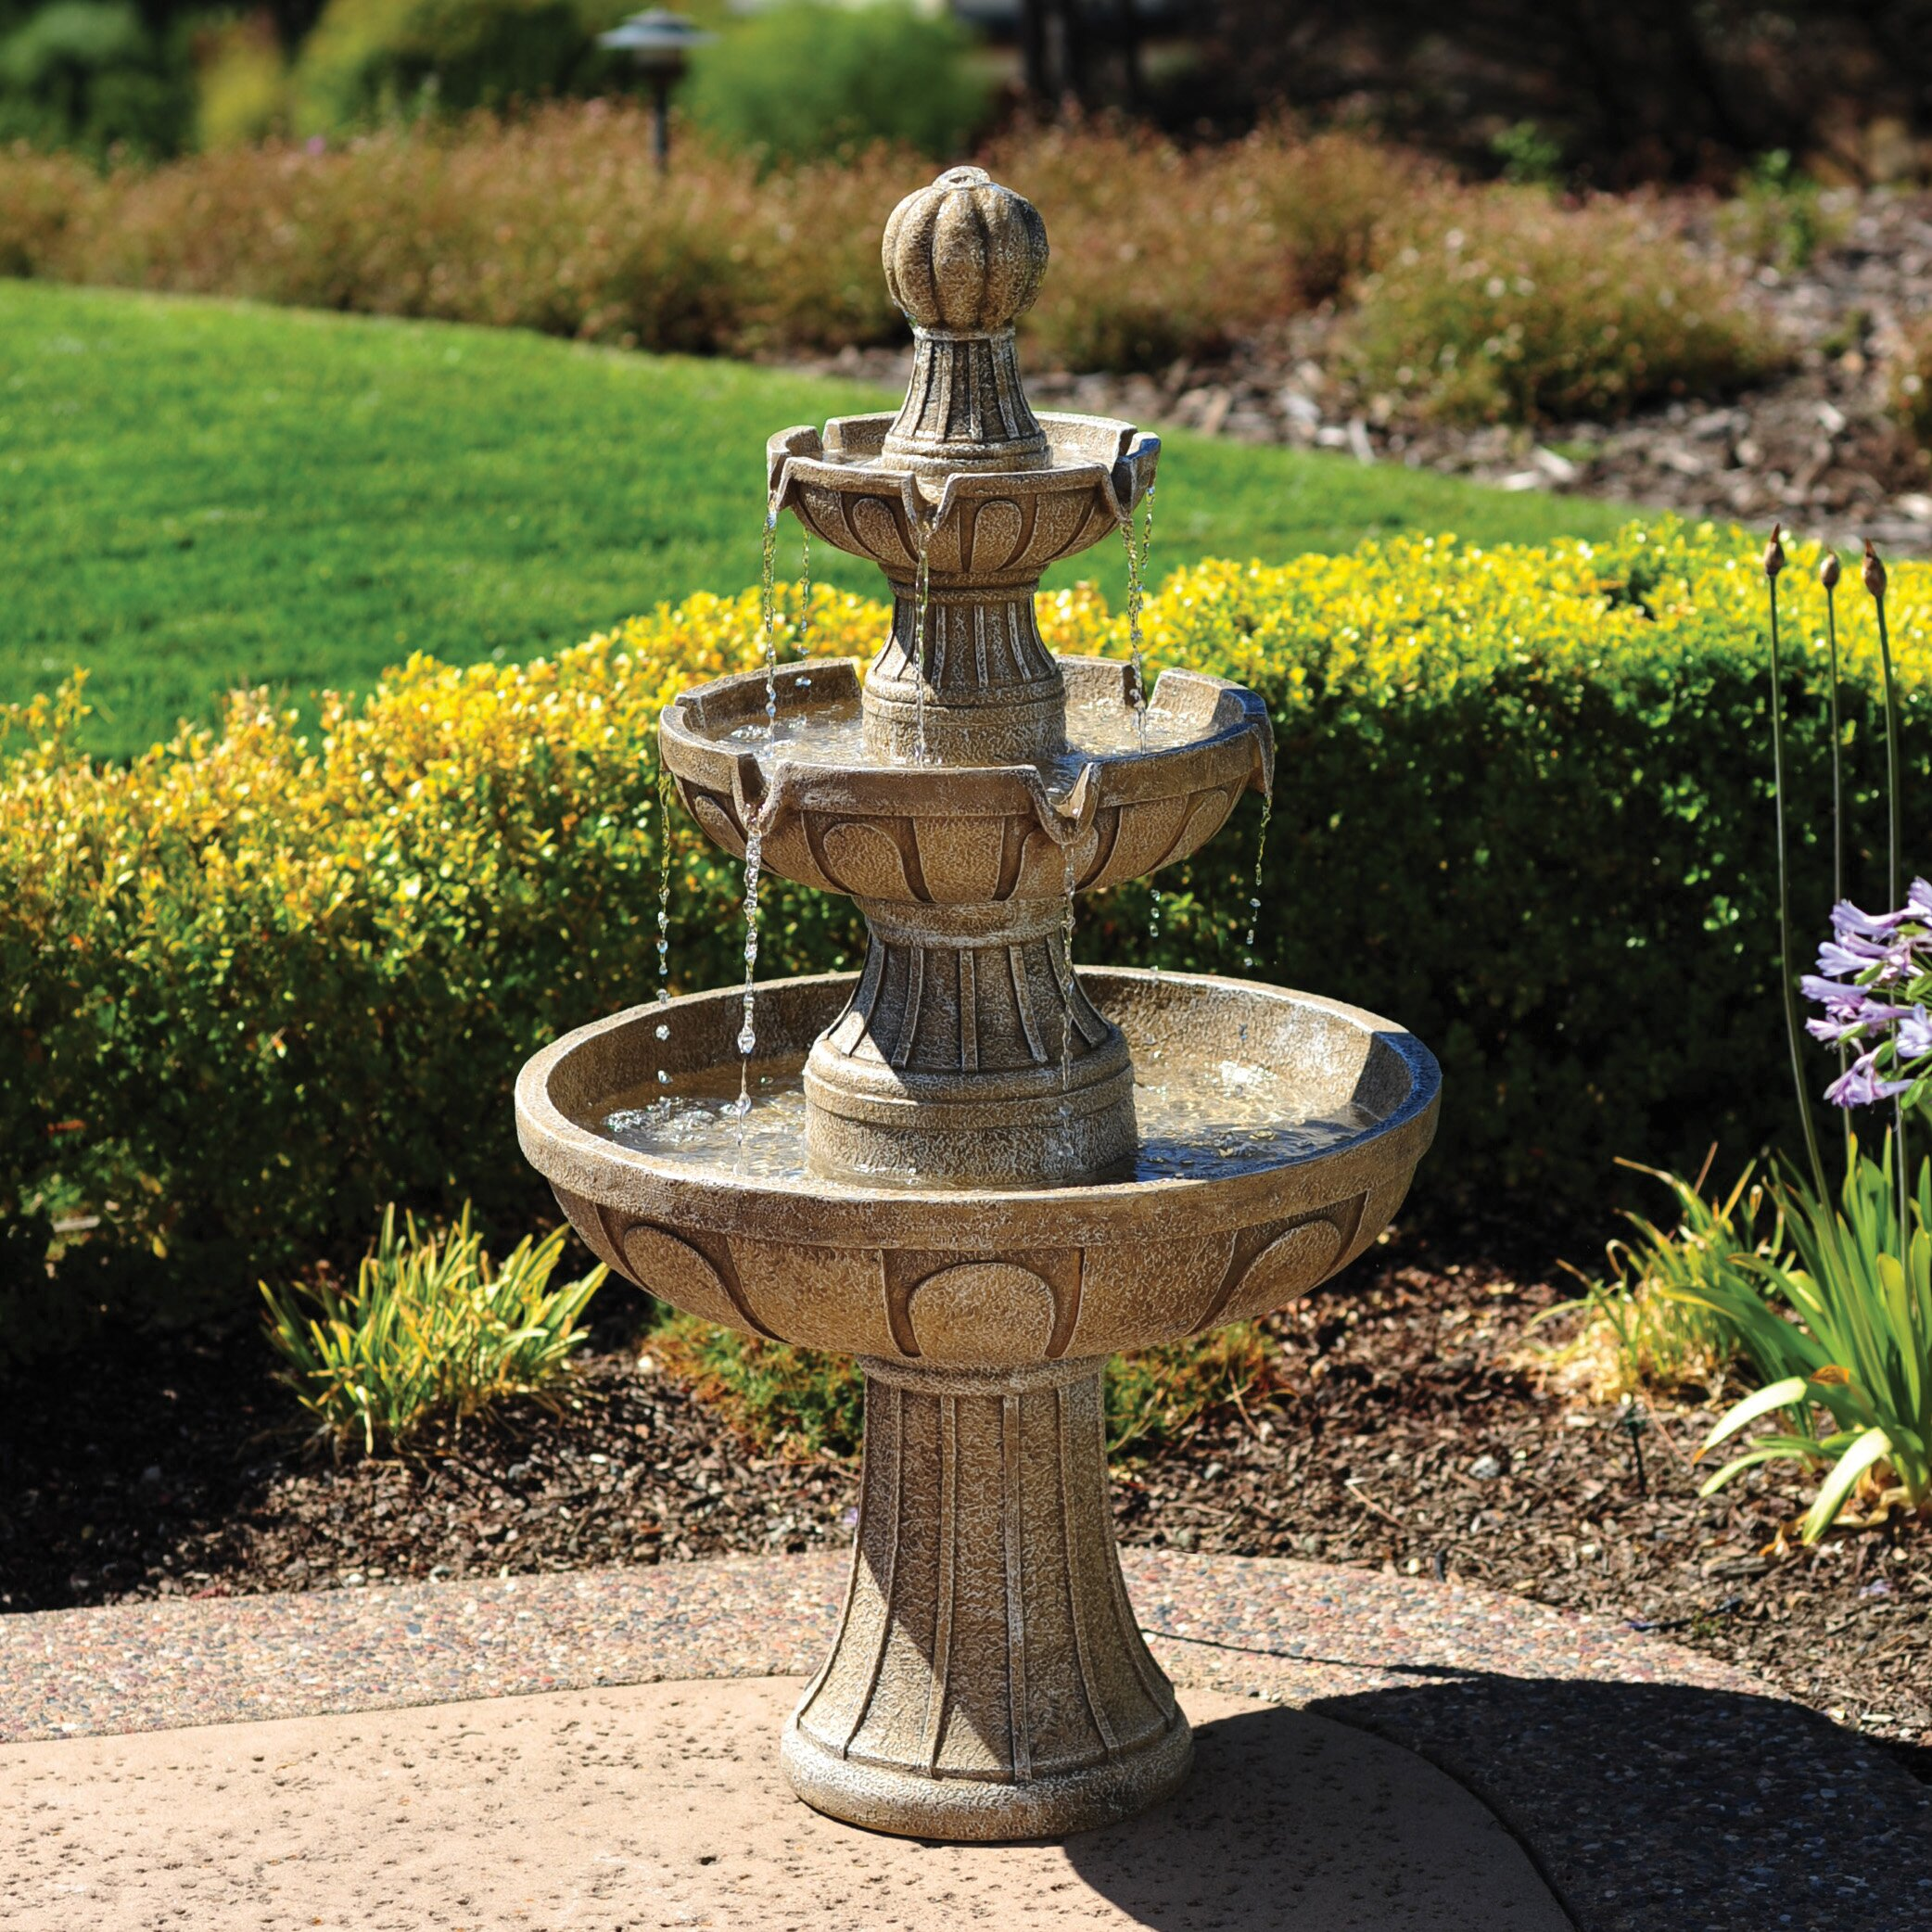 Garden Fountain: Bond Napa Valley Fiberglass 3 Tiered Fountain & Reviews